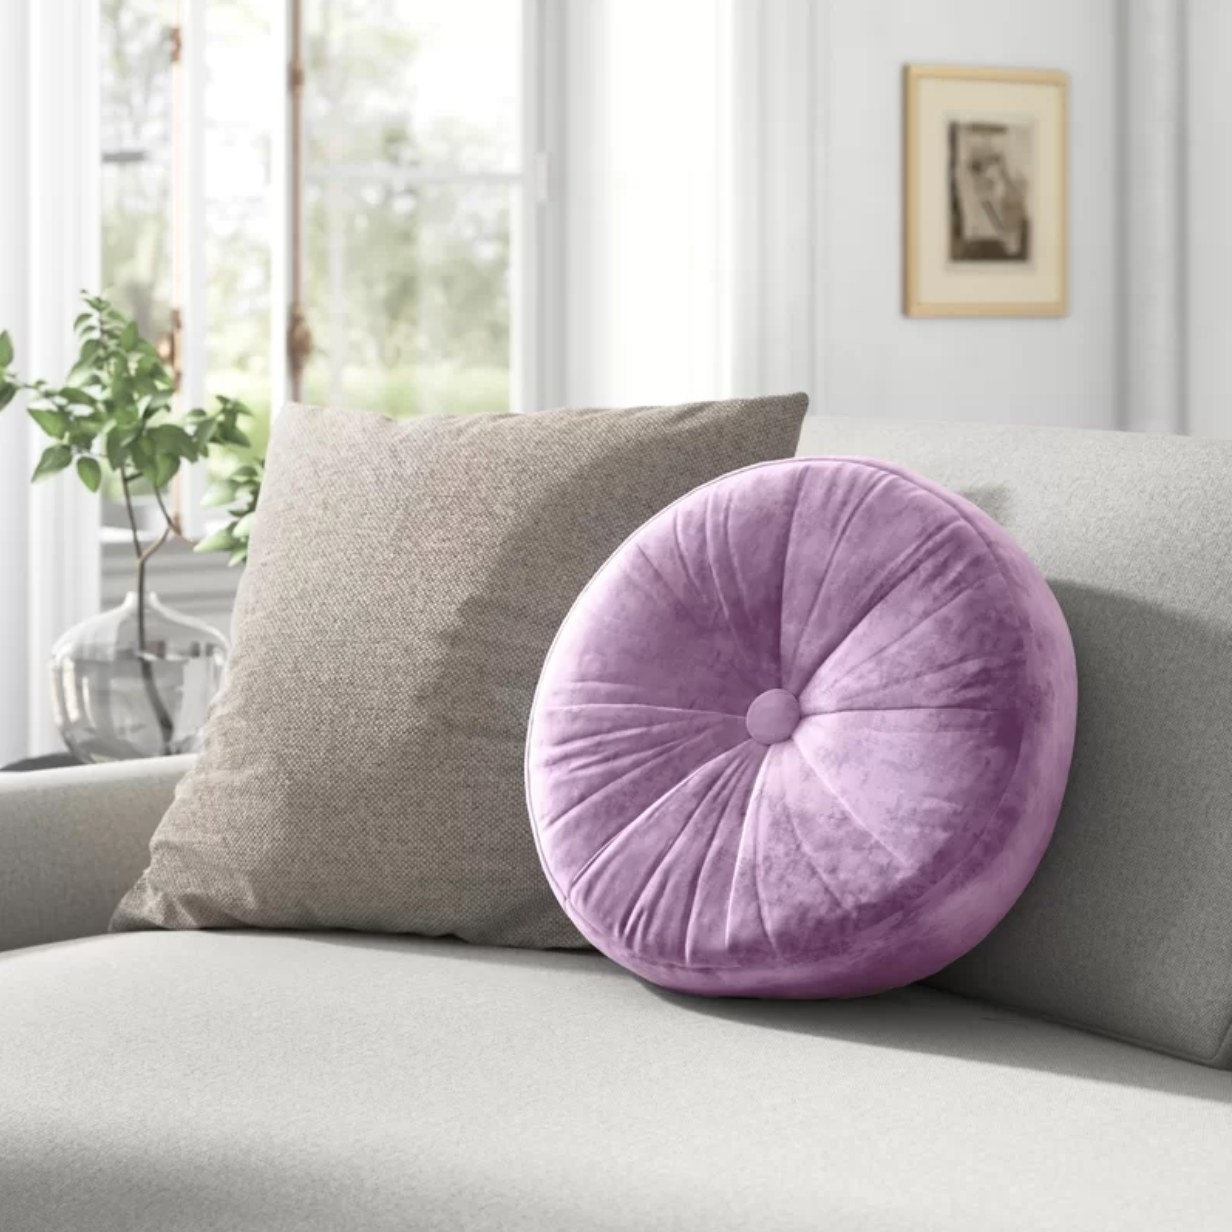 The button pillow in purple